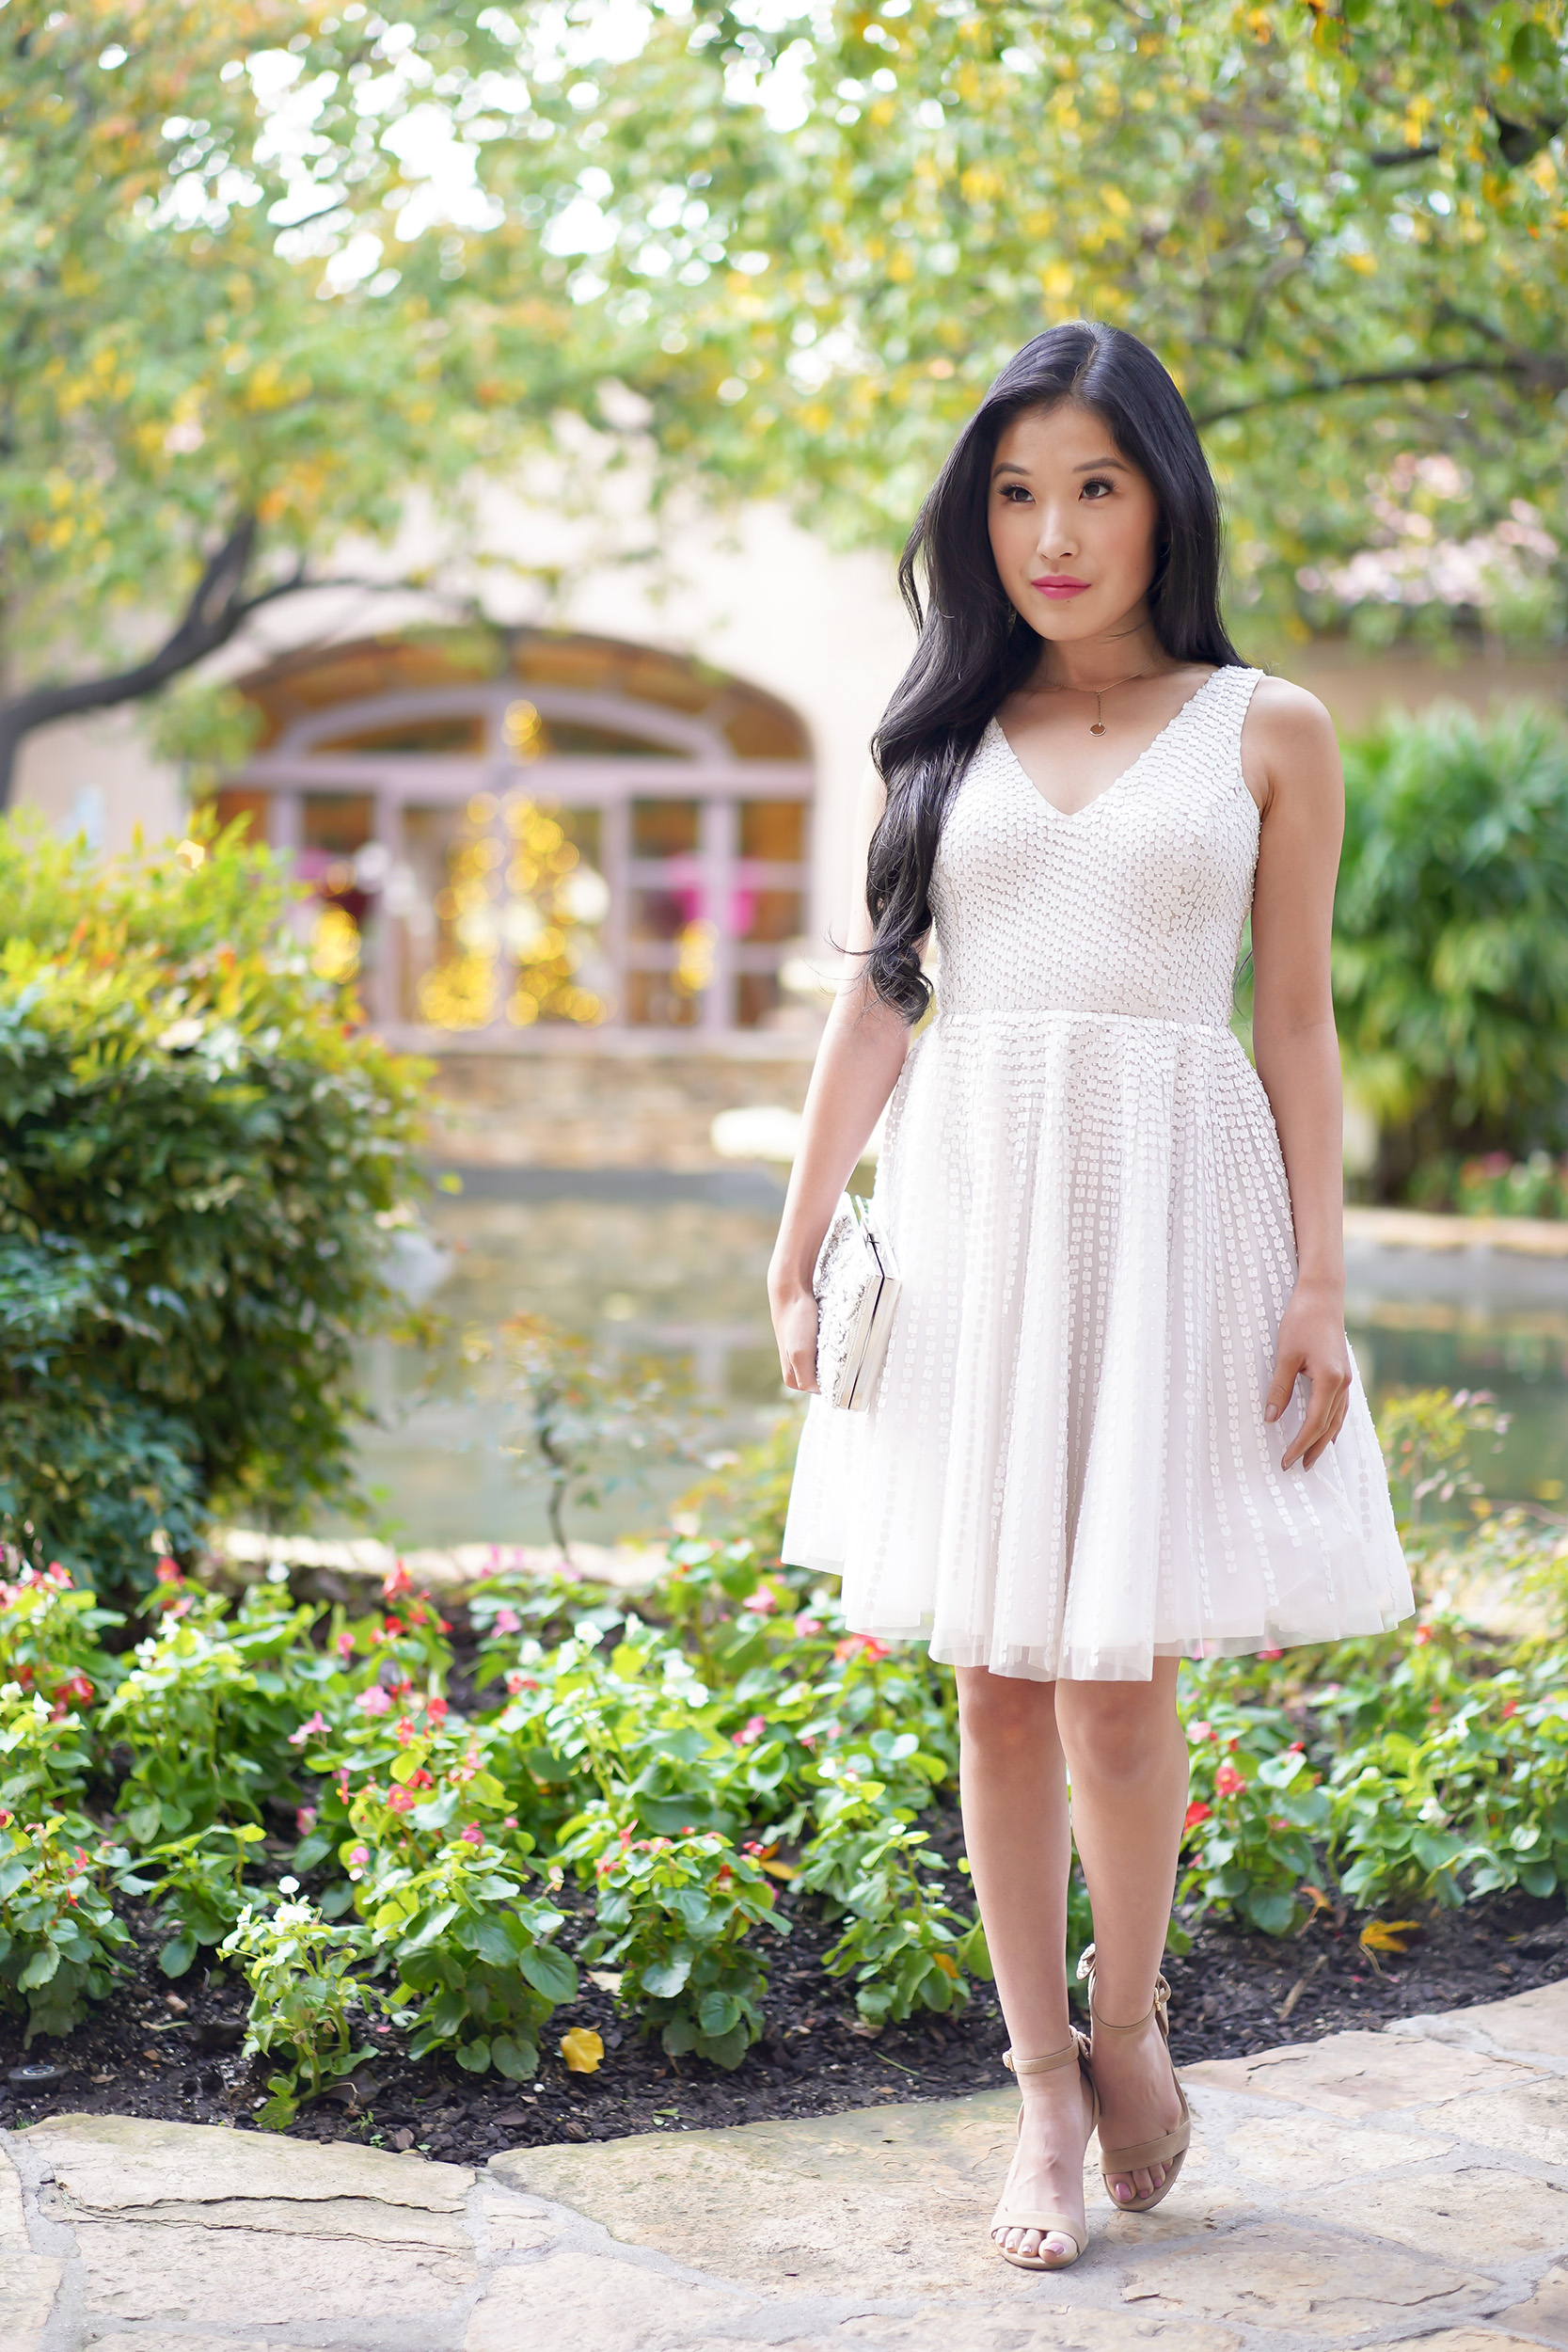 Parker Theater Dress in White, Sequin Tulle V-Neck White Dress, Courtney Kato